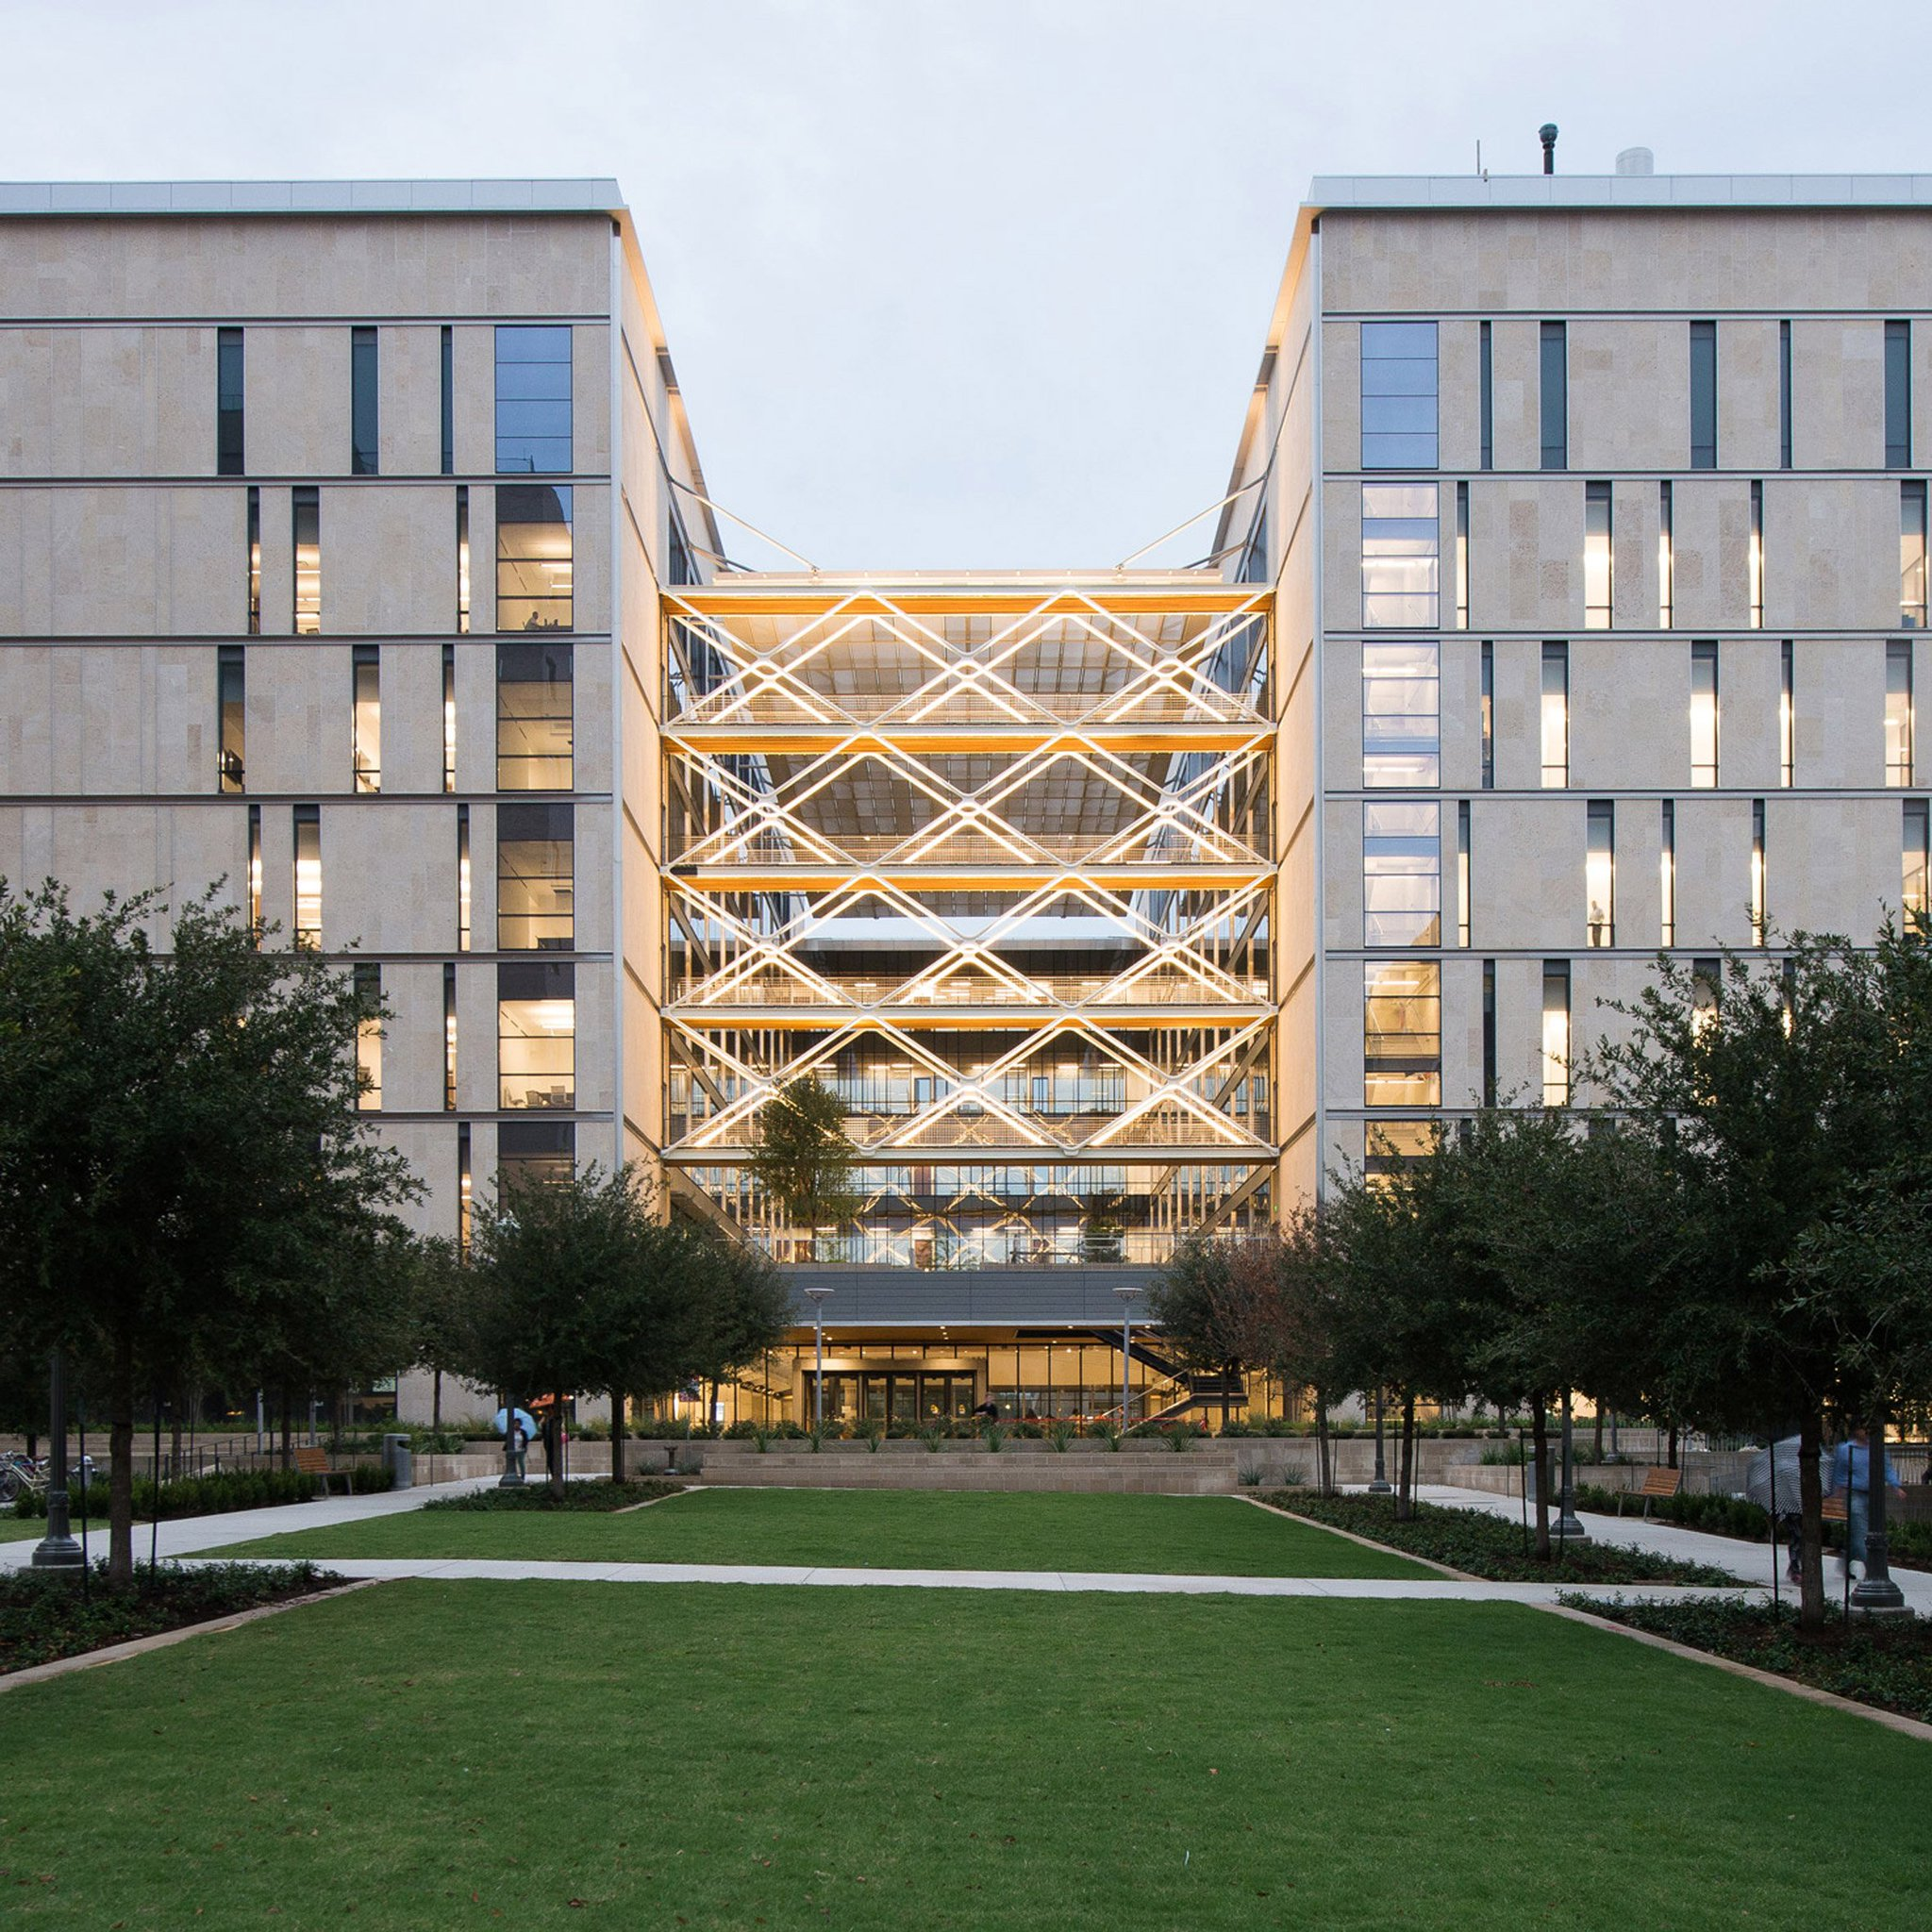 Giant metal lattice fronts atrium of Texas engineering school by Ennead https://t.co/xq7GFnpyjC https://t.co/QfCWYXLjuV